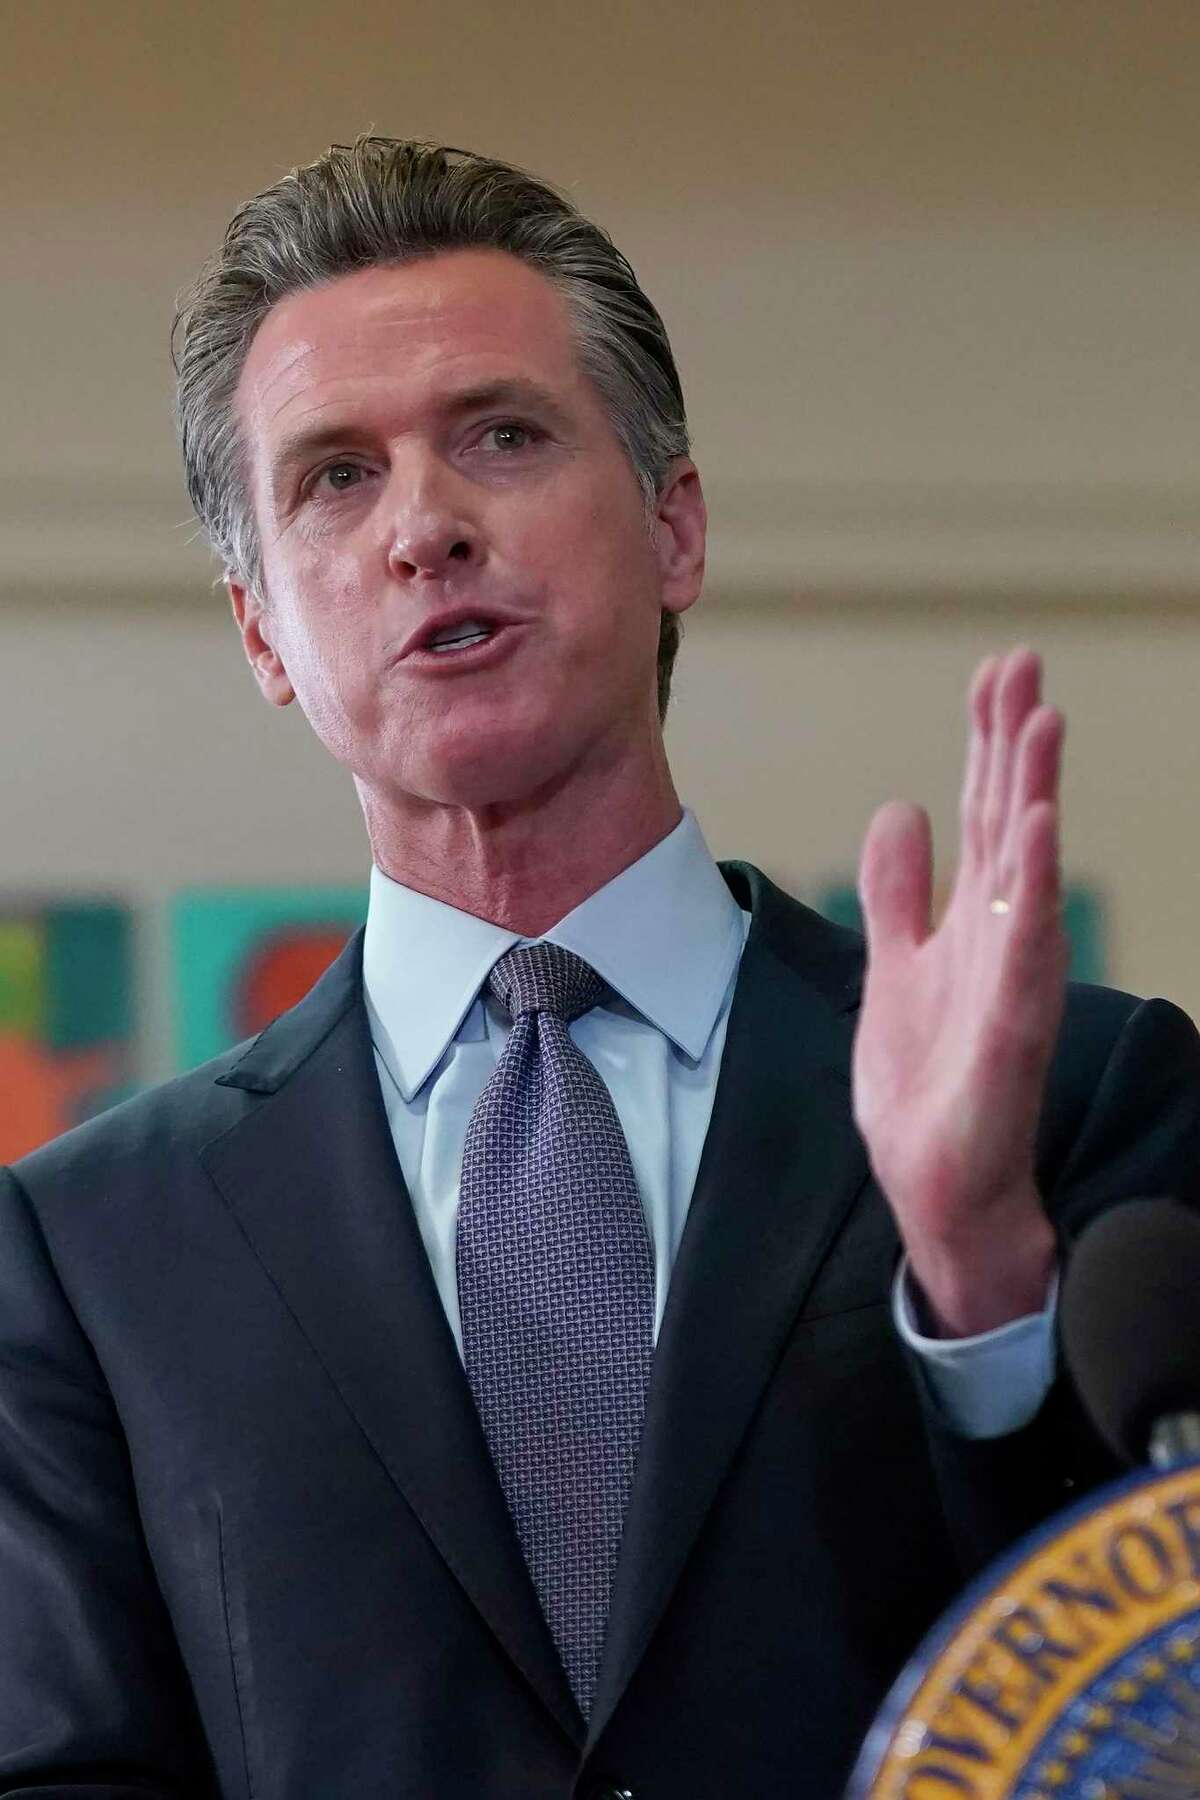 A new law signed by Gov. Gavin Newsom applies to damages that can be claimed by survivors of victims of assault, medical mistreatment or other wrongfully inflicted harm in California. For the first time they can seek damages for all harm caused by injuries to the victim - including pain, suffering and disfigurement - as well as economic losses.